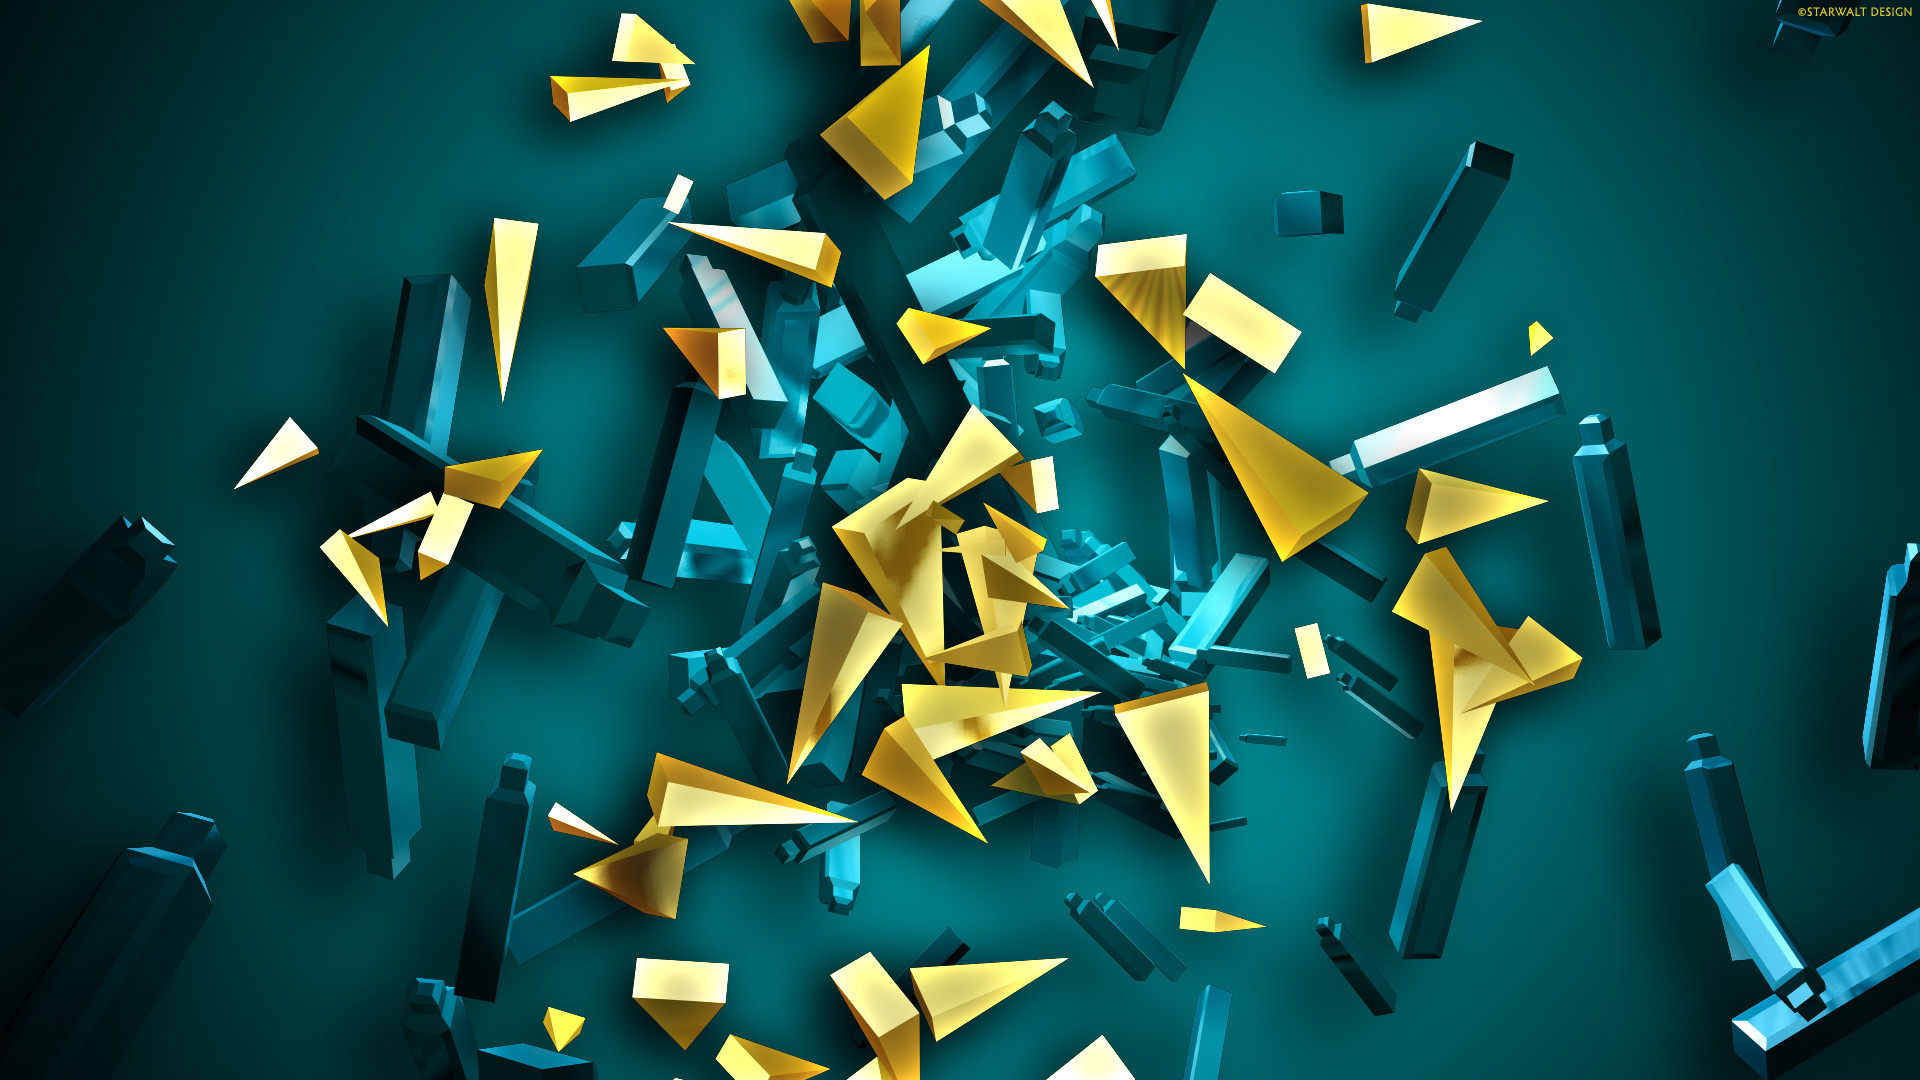 cool 3d abstract wallpapers (66+ images)